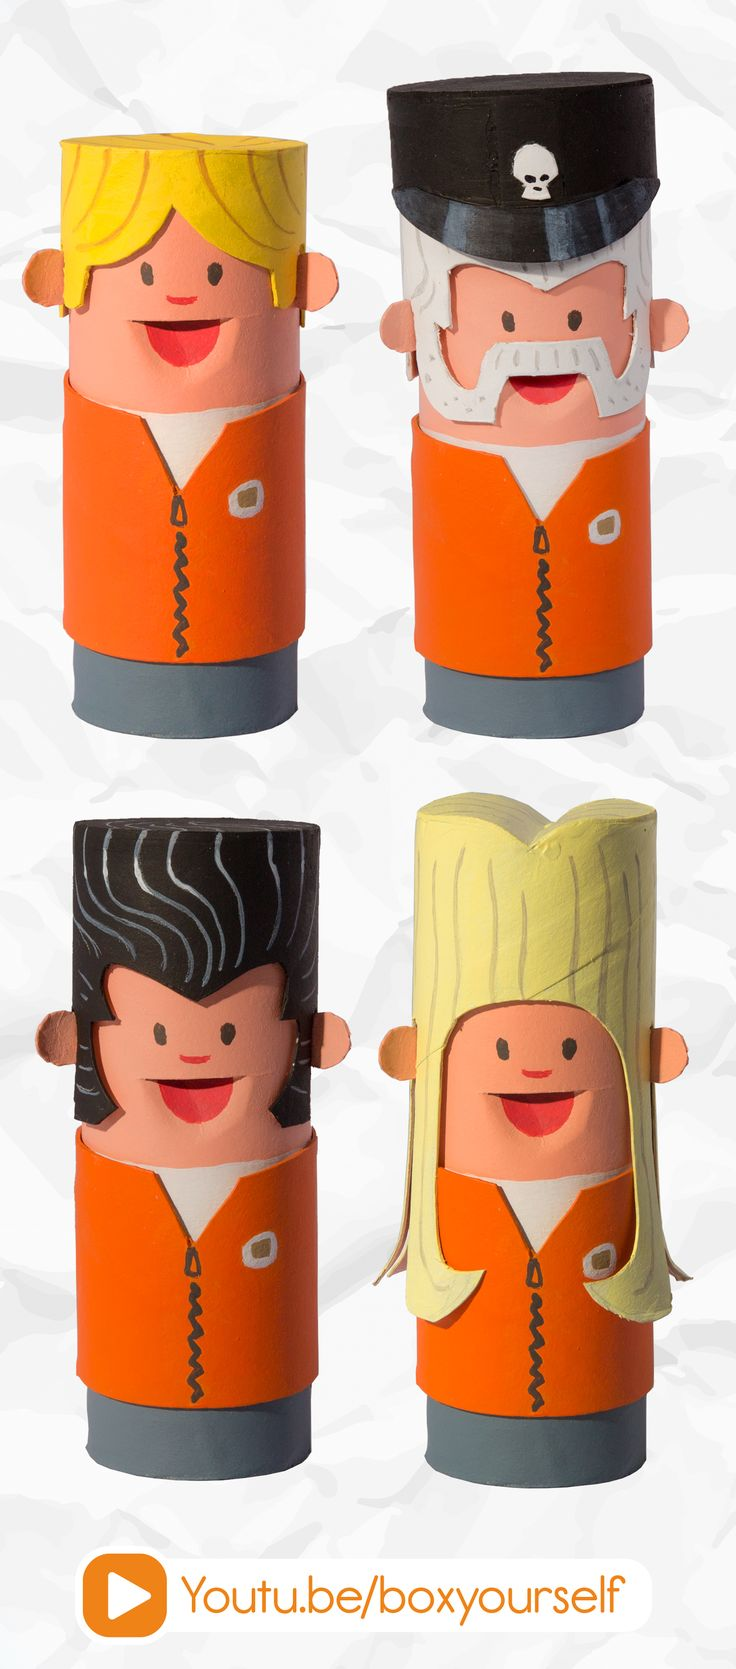 Toilet Tube Figures! #boxyourself #diy #crafts #kids #projects #ideas #make #learn #cardboard #toilet #roll #home #decor #decoration #figures #handmade #toys #creative #creativity #inspiration #art #upcycle #paper #craft